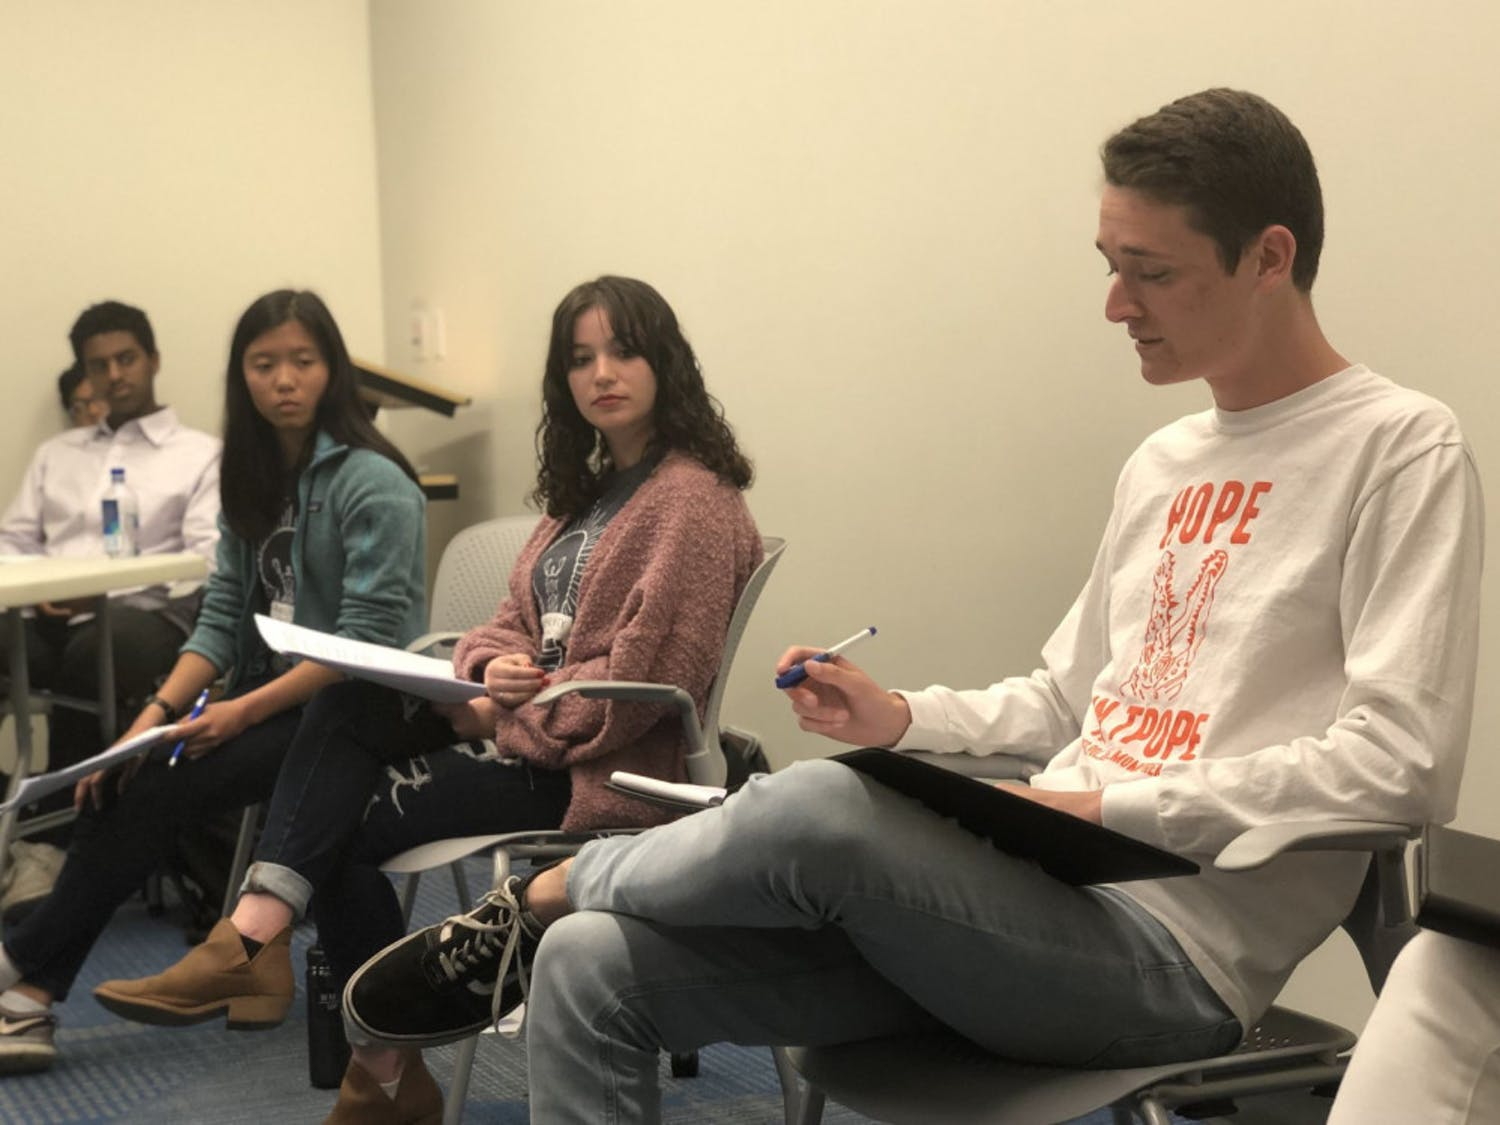 Candidates Emma Sanchez (left), Zoe Terner (middle) and Nick Meyer (right) deliver their closing remarks at a debate between Inspire and Gator parties' liberal arts and sciences candidates on Monday night.